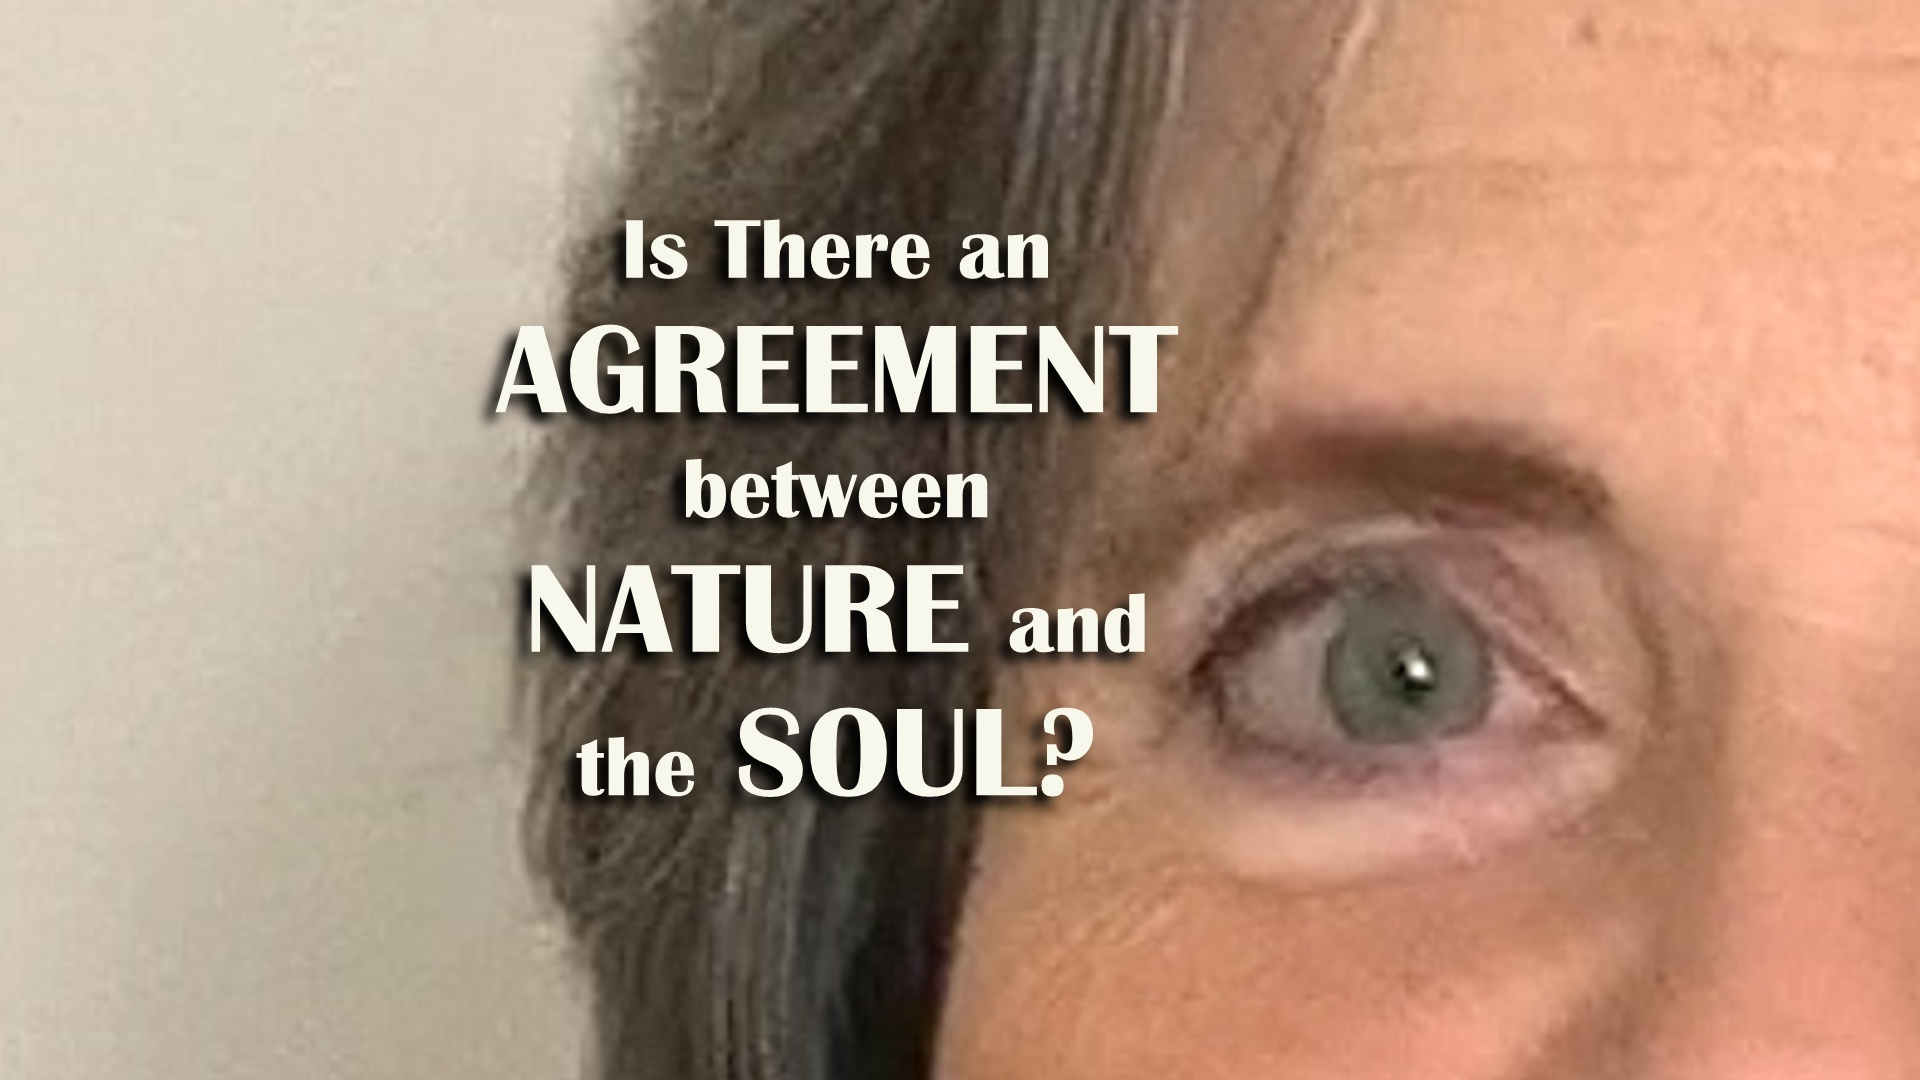 is there an agreement between nature and the soul